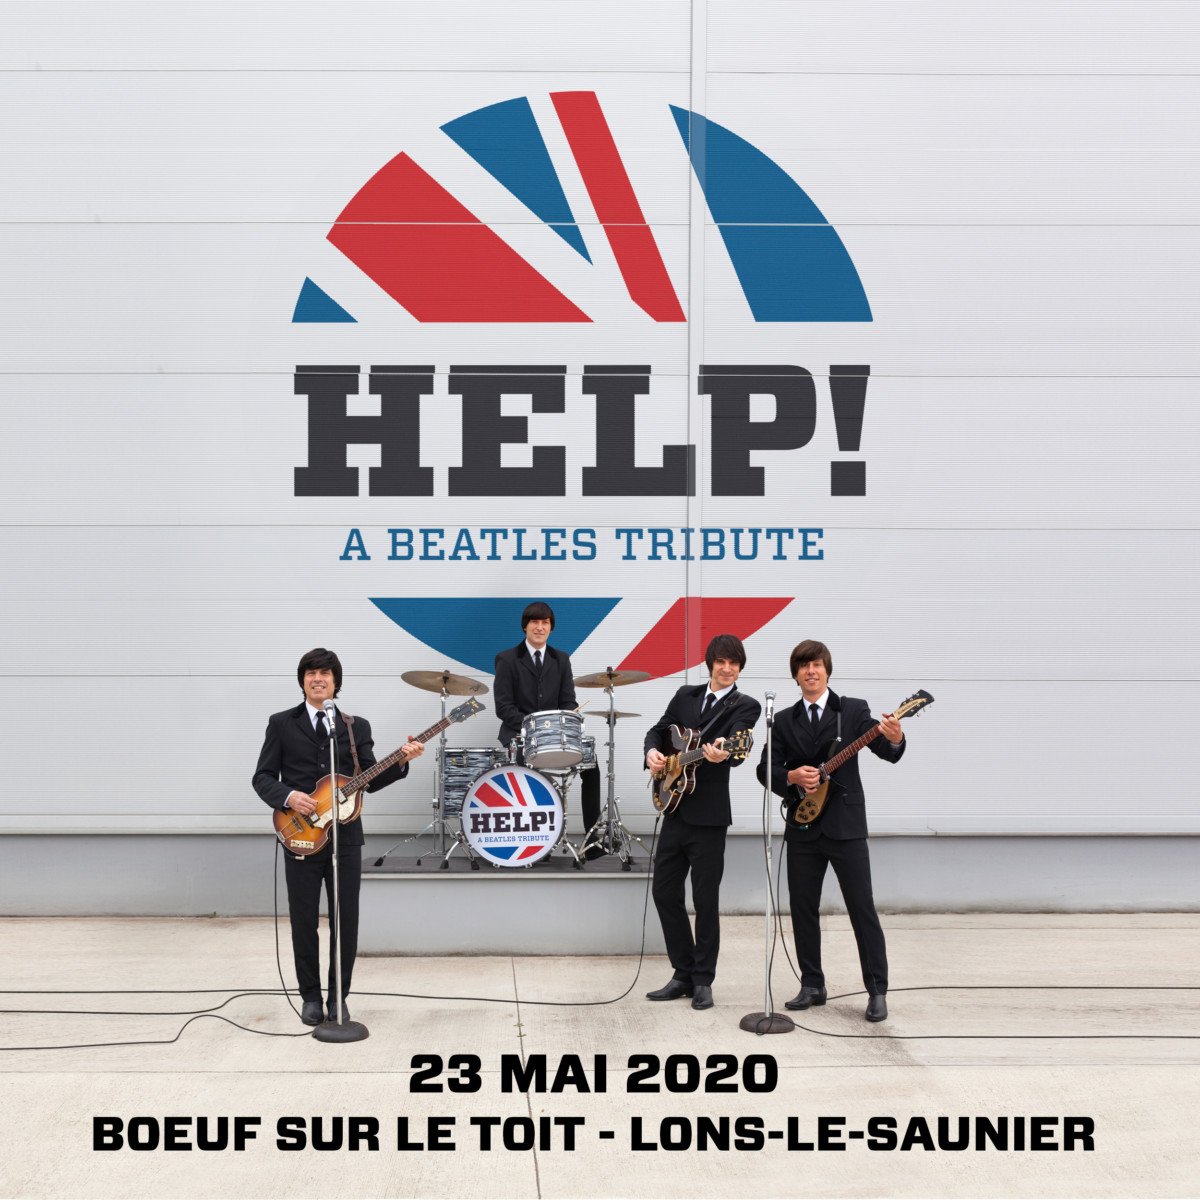 HELP ! A BEATLES TRIBUTE